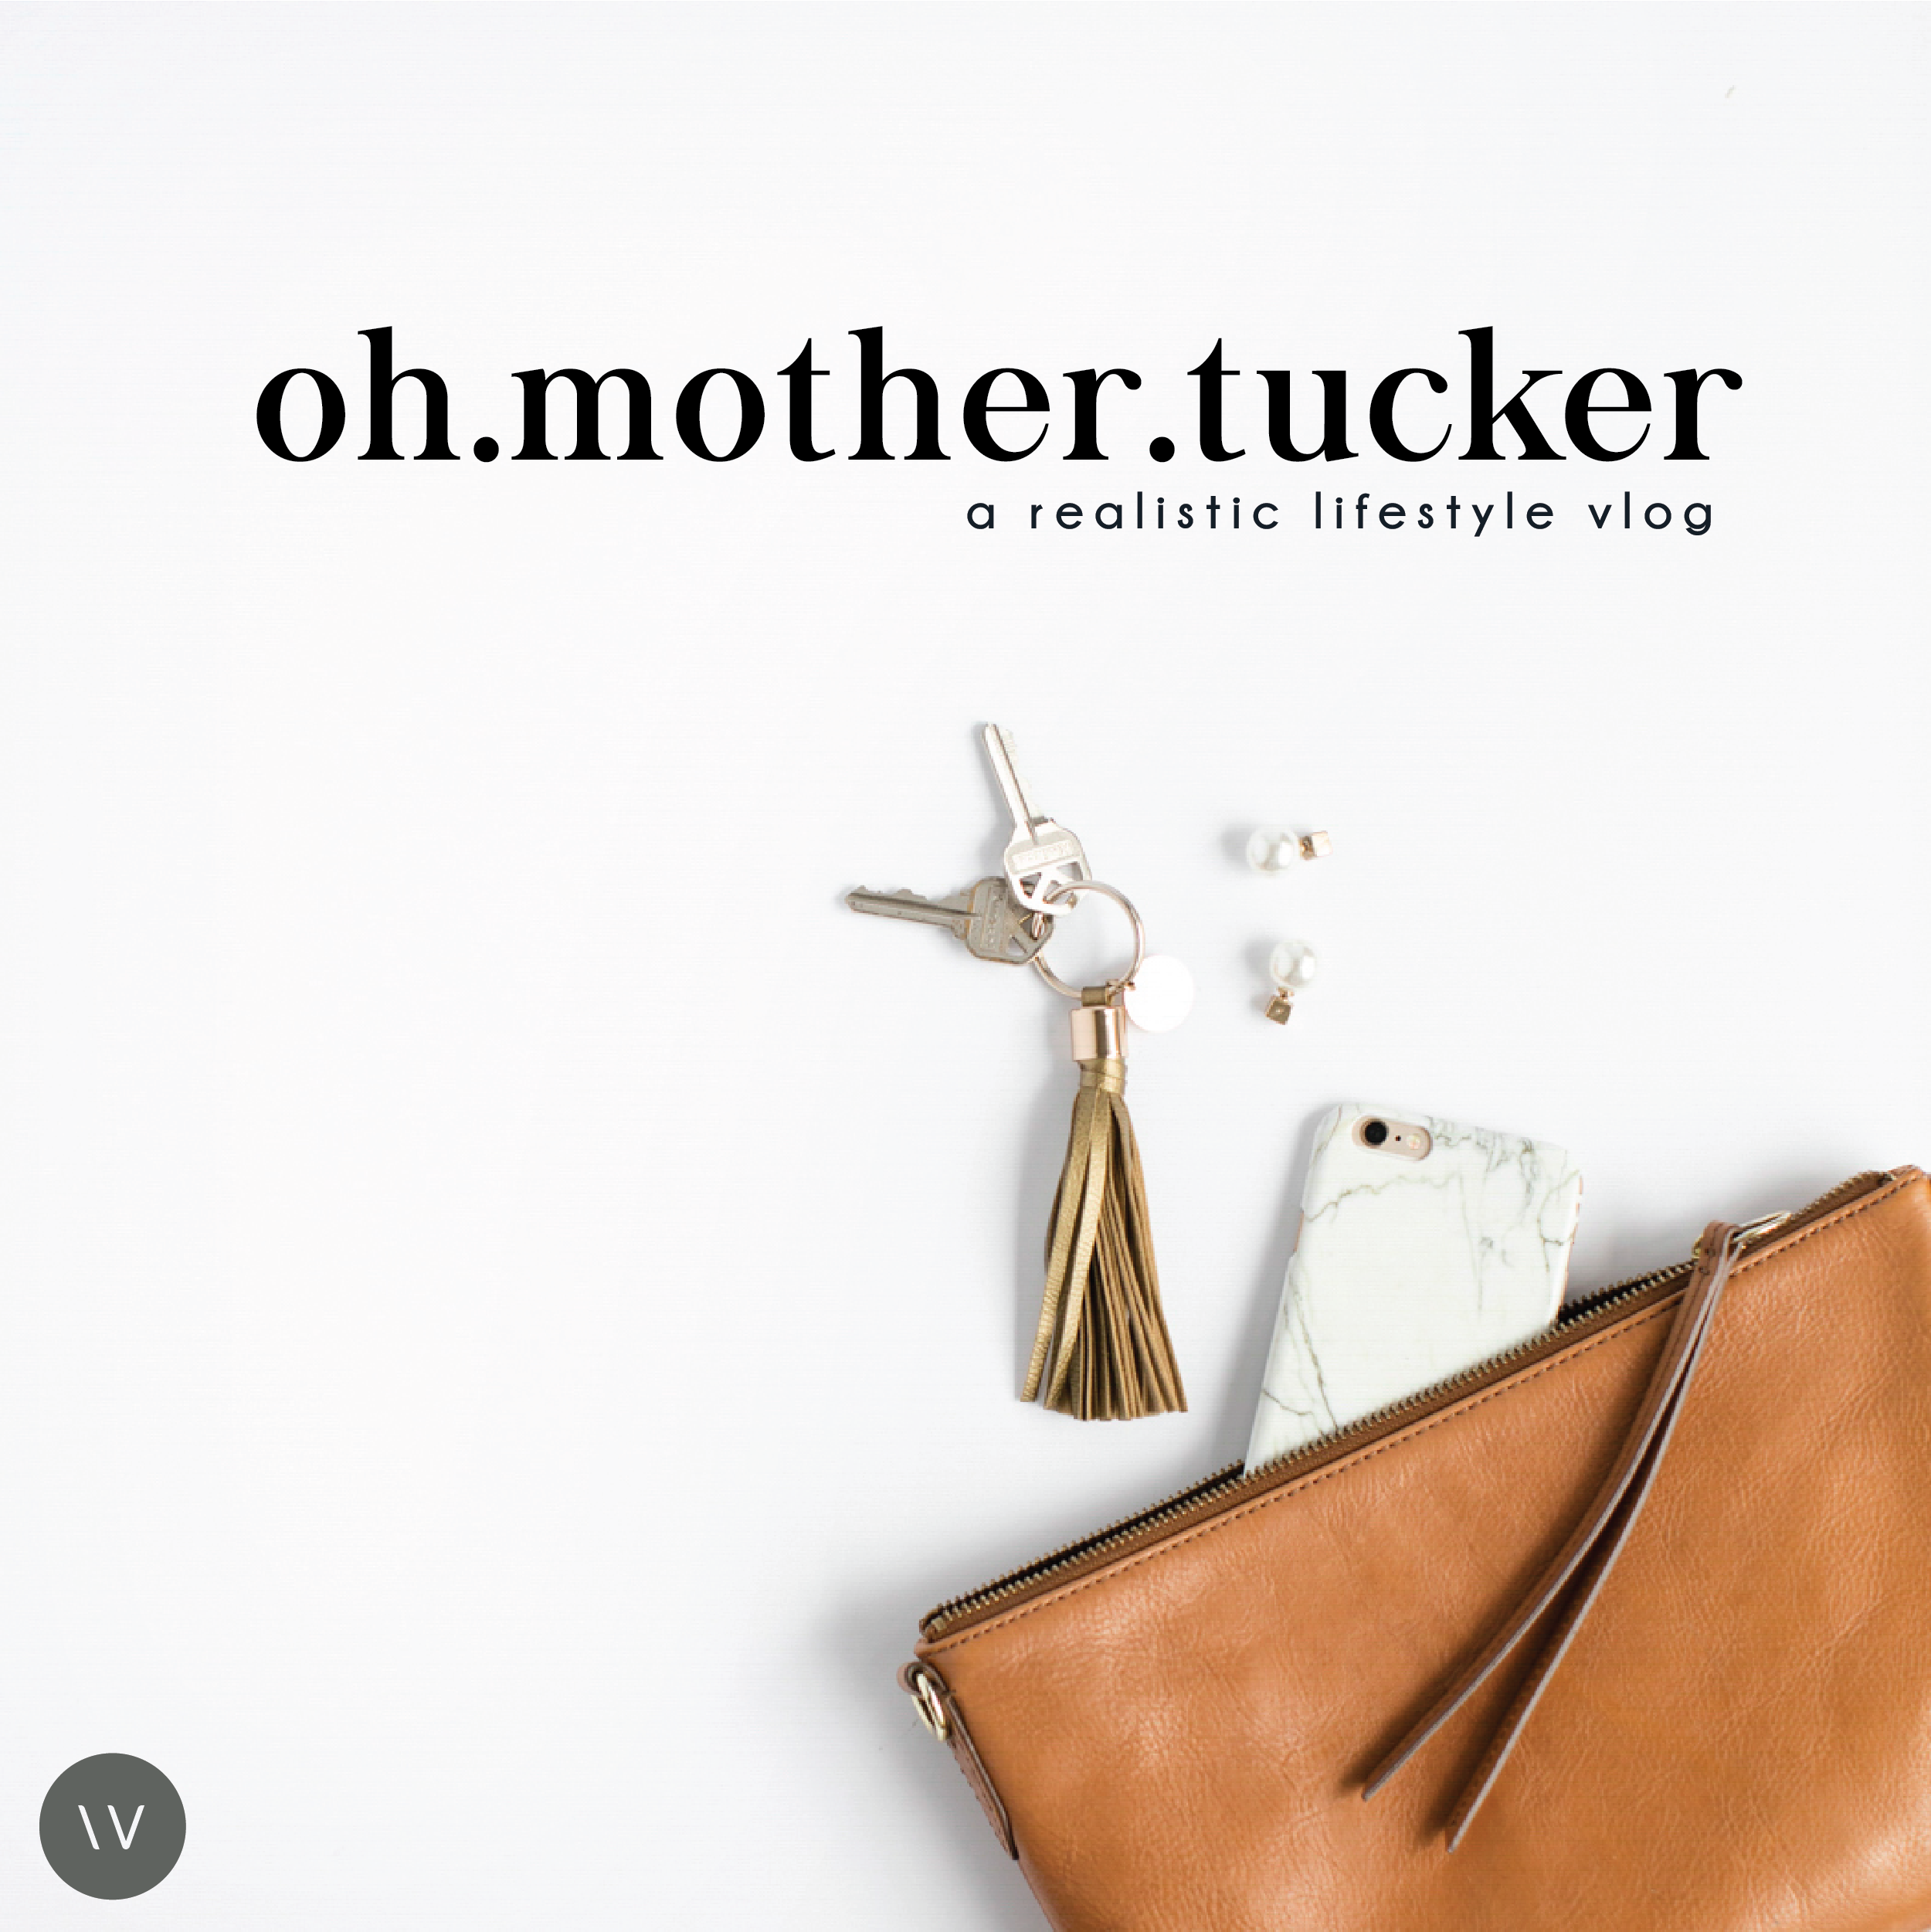 OH MOTHER TUCKER PERSONAL VLOG  | BRANDING - SOCIAL STYLING + BLOG DESIGN (LAUNCHING SOON)